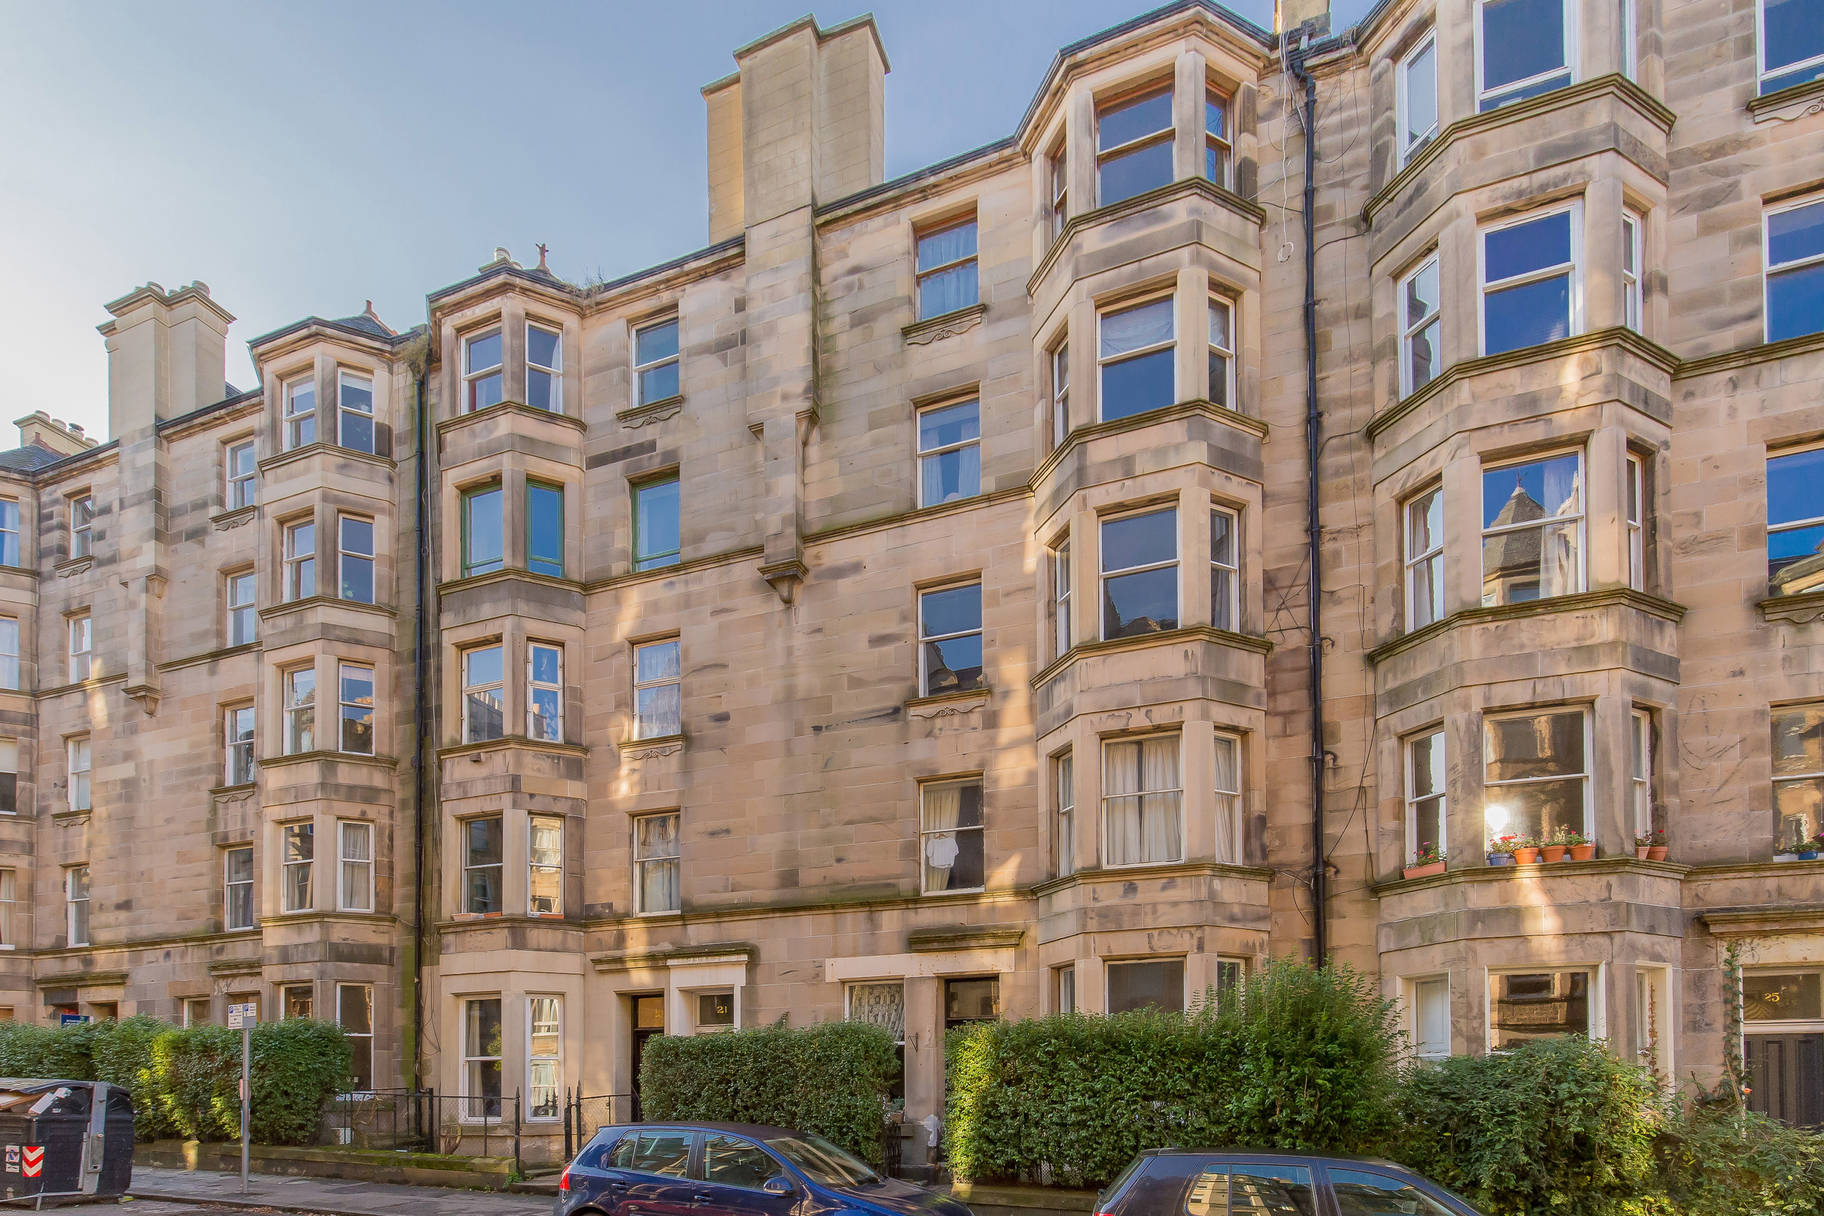 21 (Flat 7/4F1) Viewforth, Edinburgh, EH10 4JD